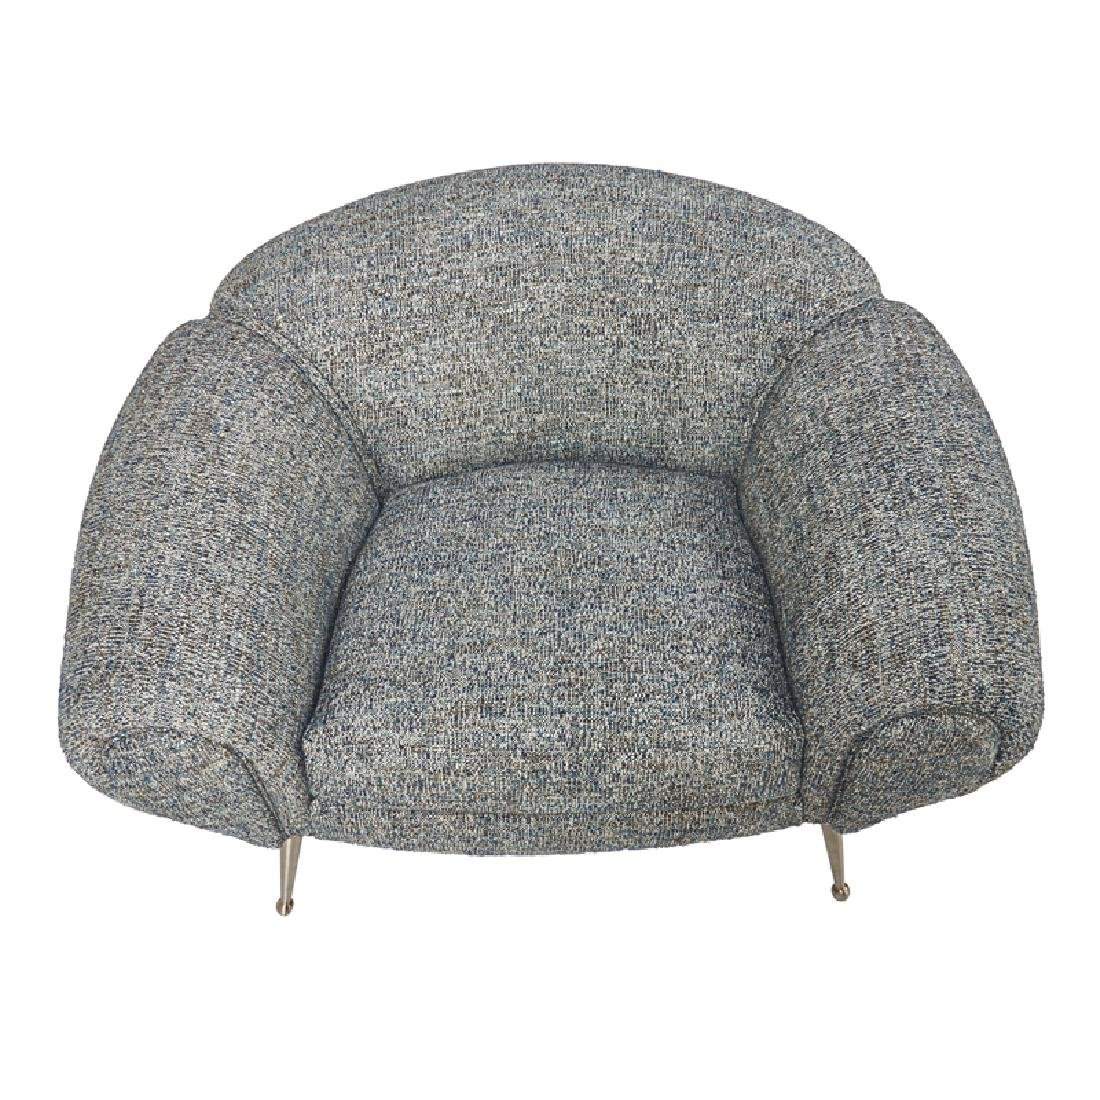 STYLE OF ILLUM WIKKELSO Sofa and lounge chair - 4